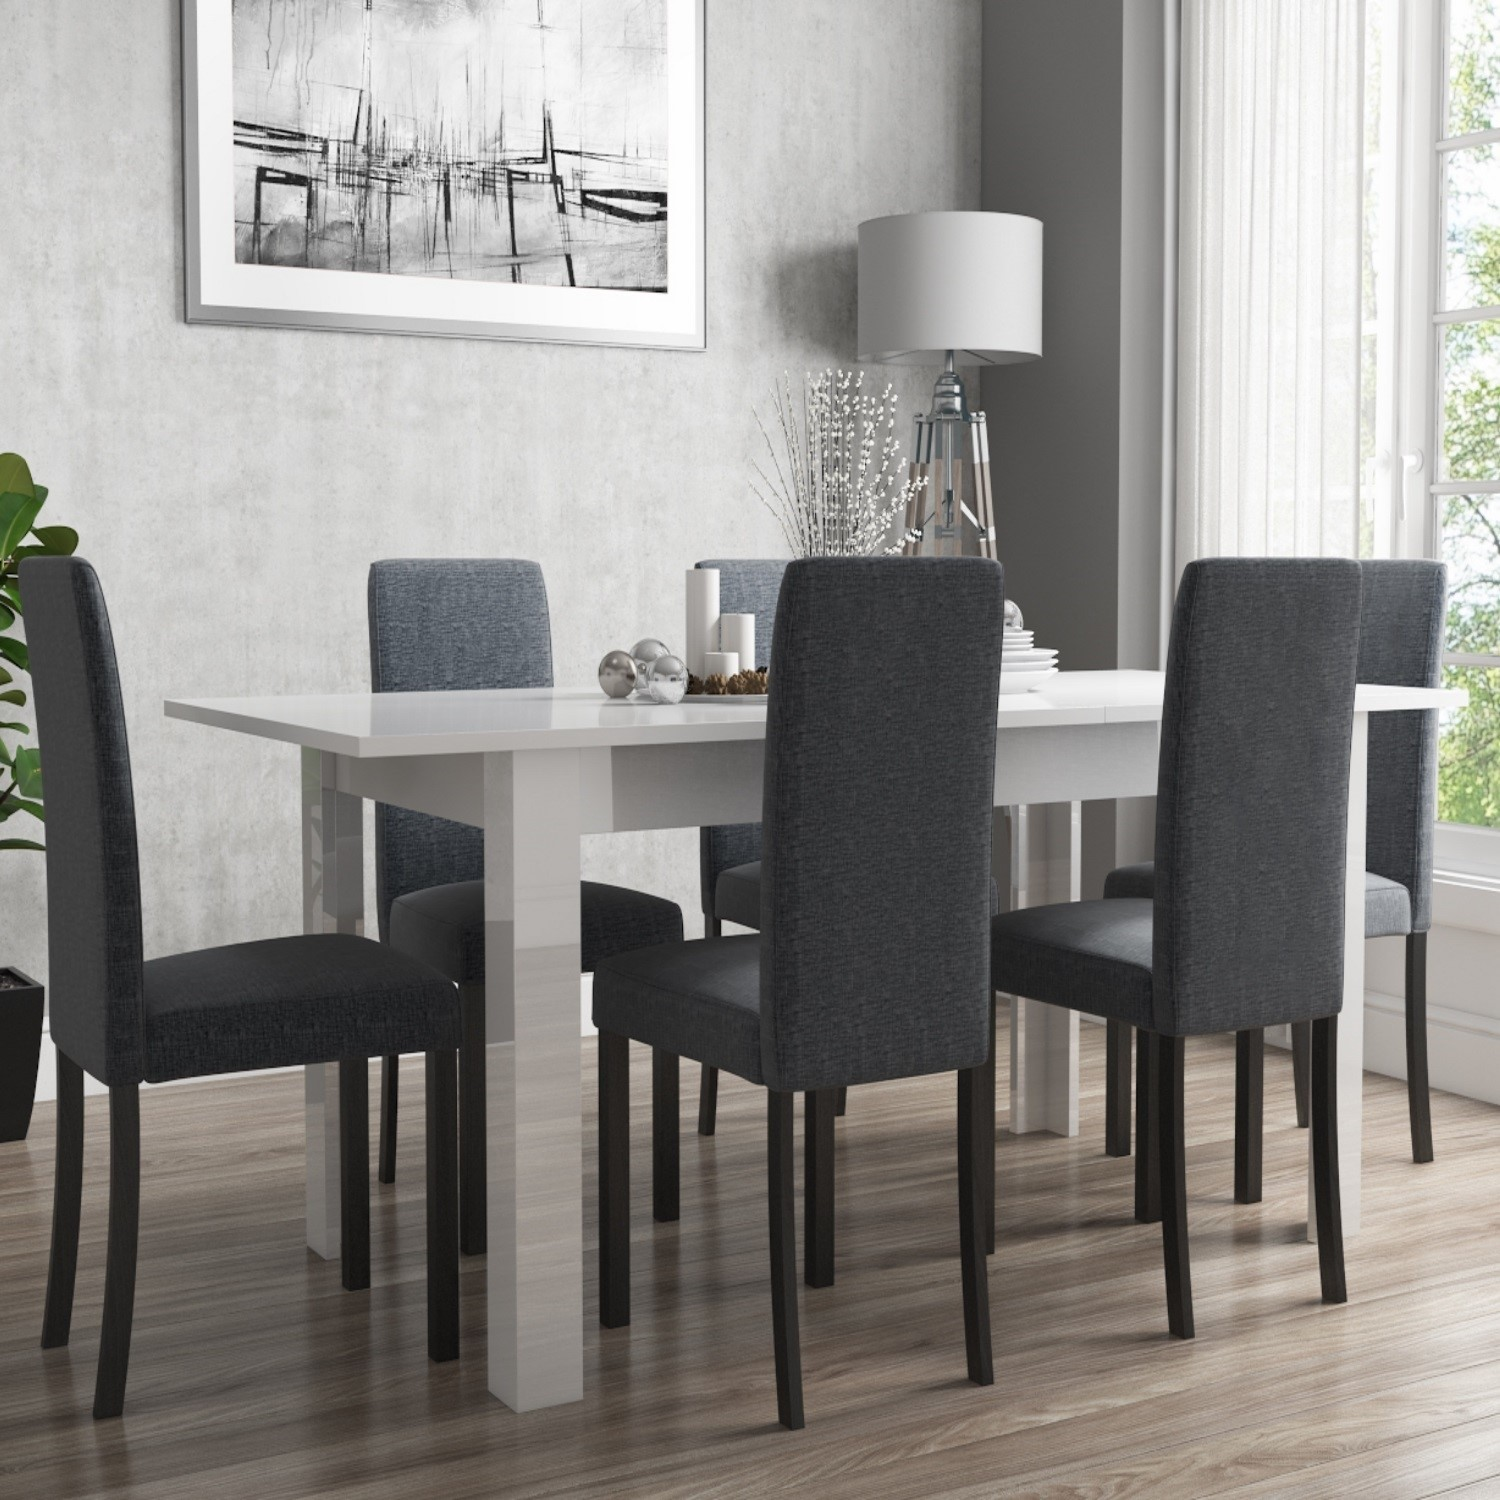 white extendable white high gloss dining table 6 slate grey chairs rh furniture123 co uk grey kitchen table and chairs set gray kitchen table and chairs